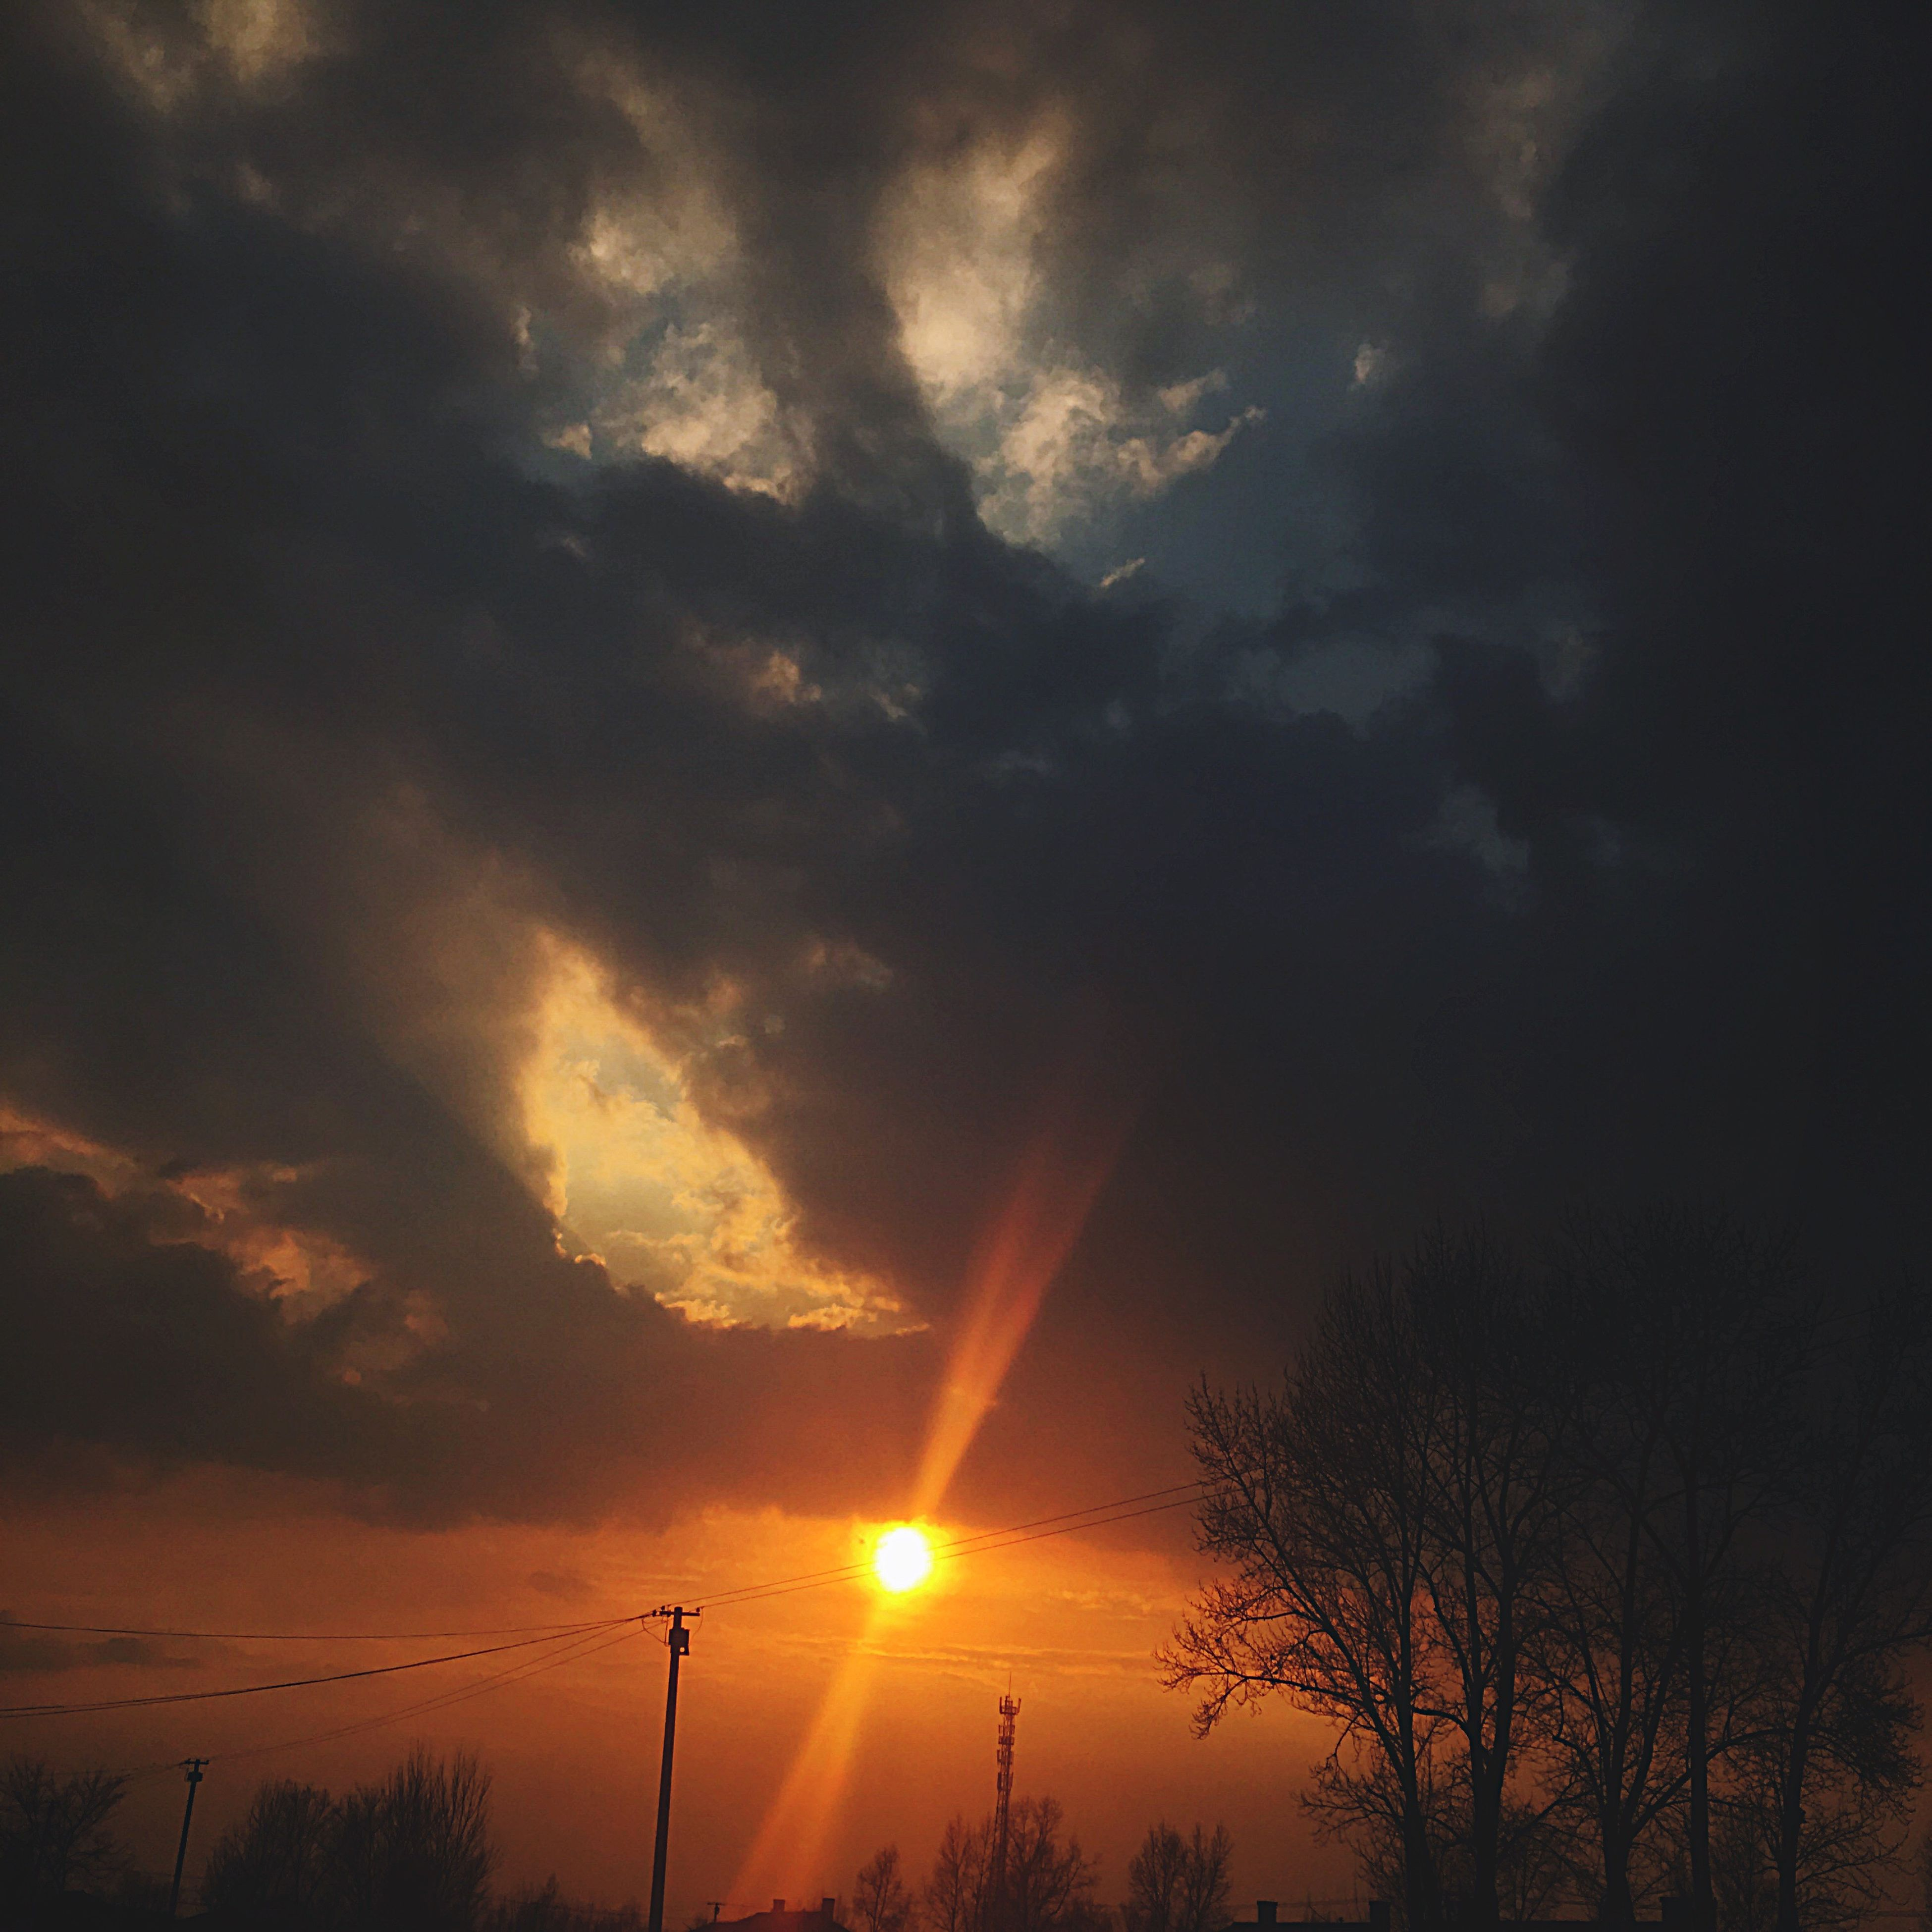 sunset, sky, nature, silhouette, beauty in nature, dramatic sky, scenics, no people, cloud - sky, tranquility, outdoors, tree, storm cloud, power in nature, star - space, night, galaxy, astronomy, aurora polaris